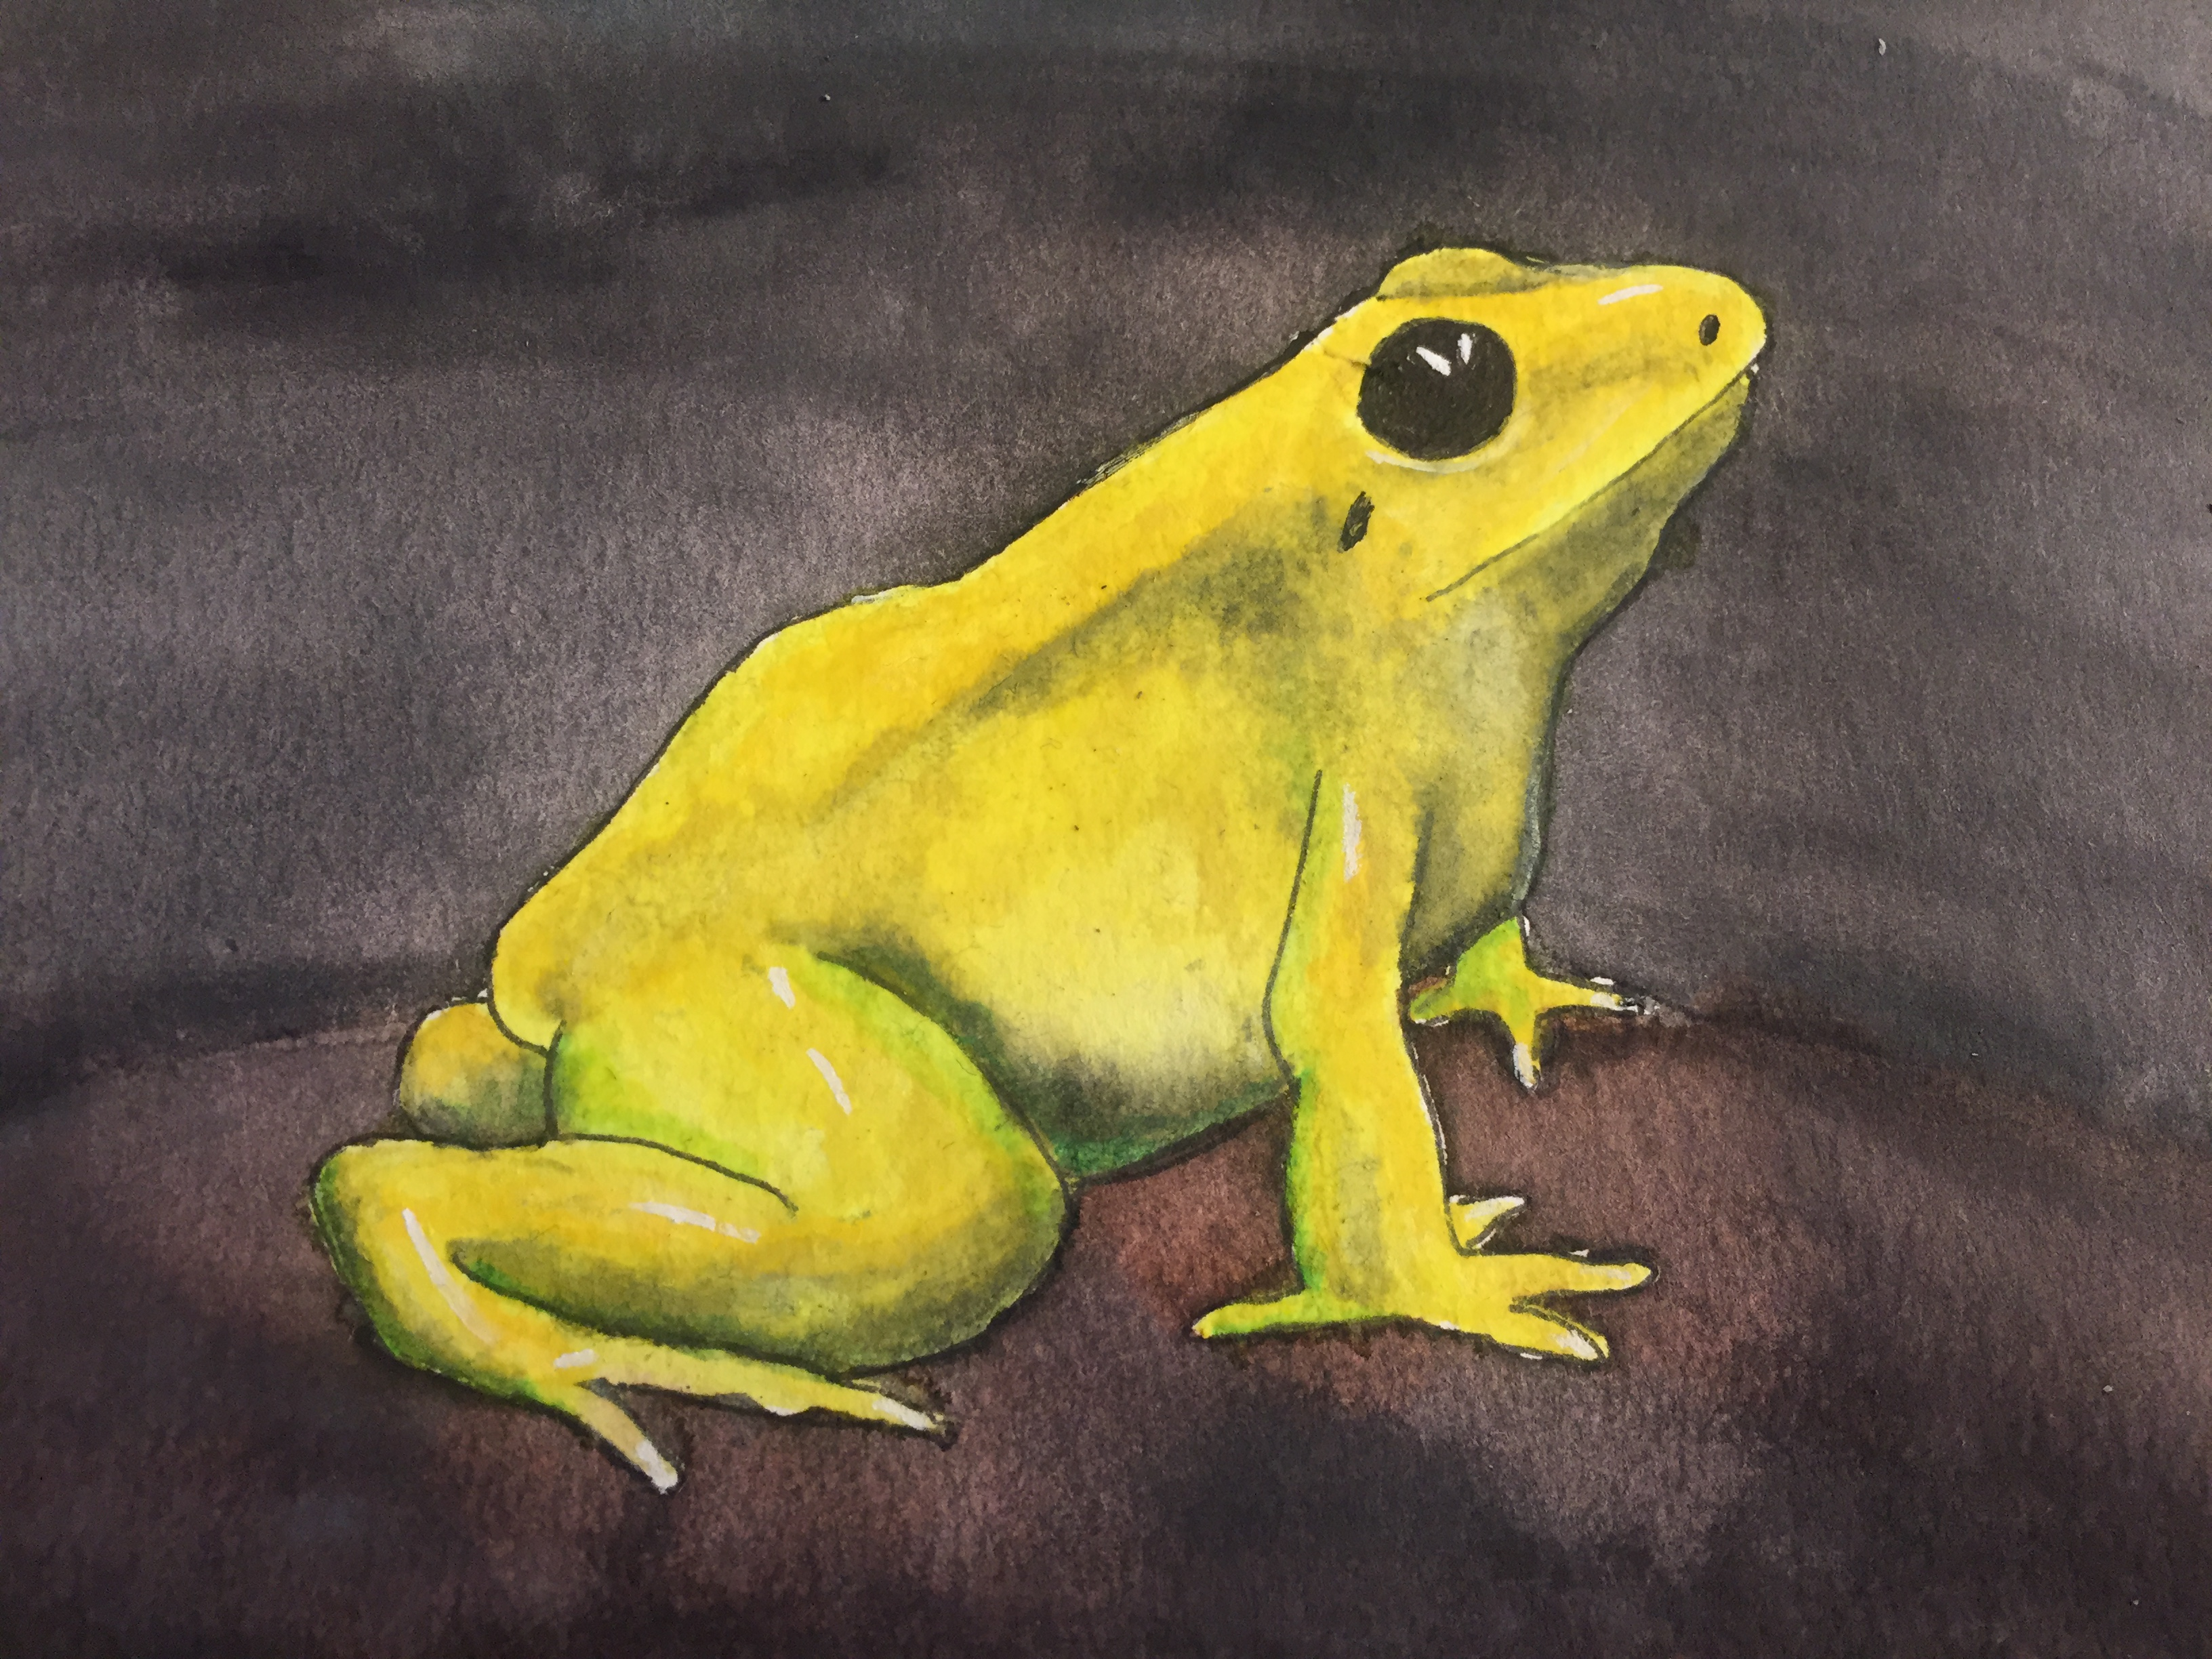 Picture of How to Paint a Yellow Frog